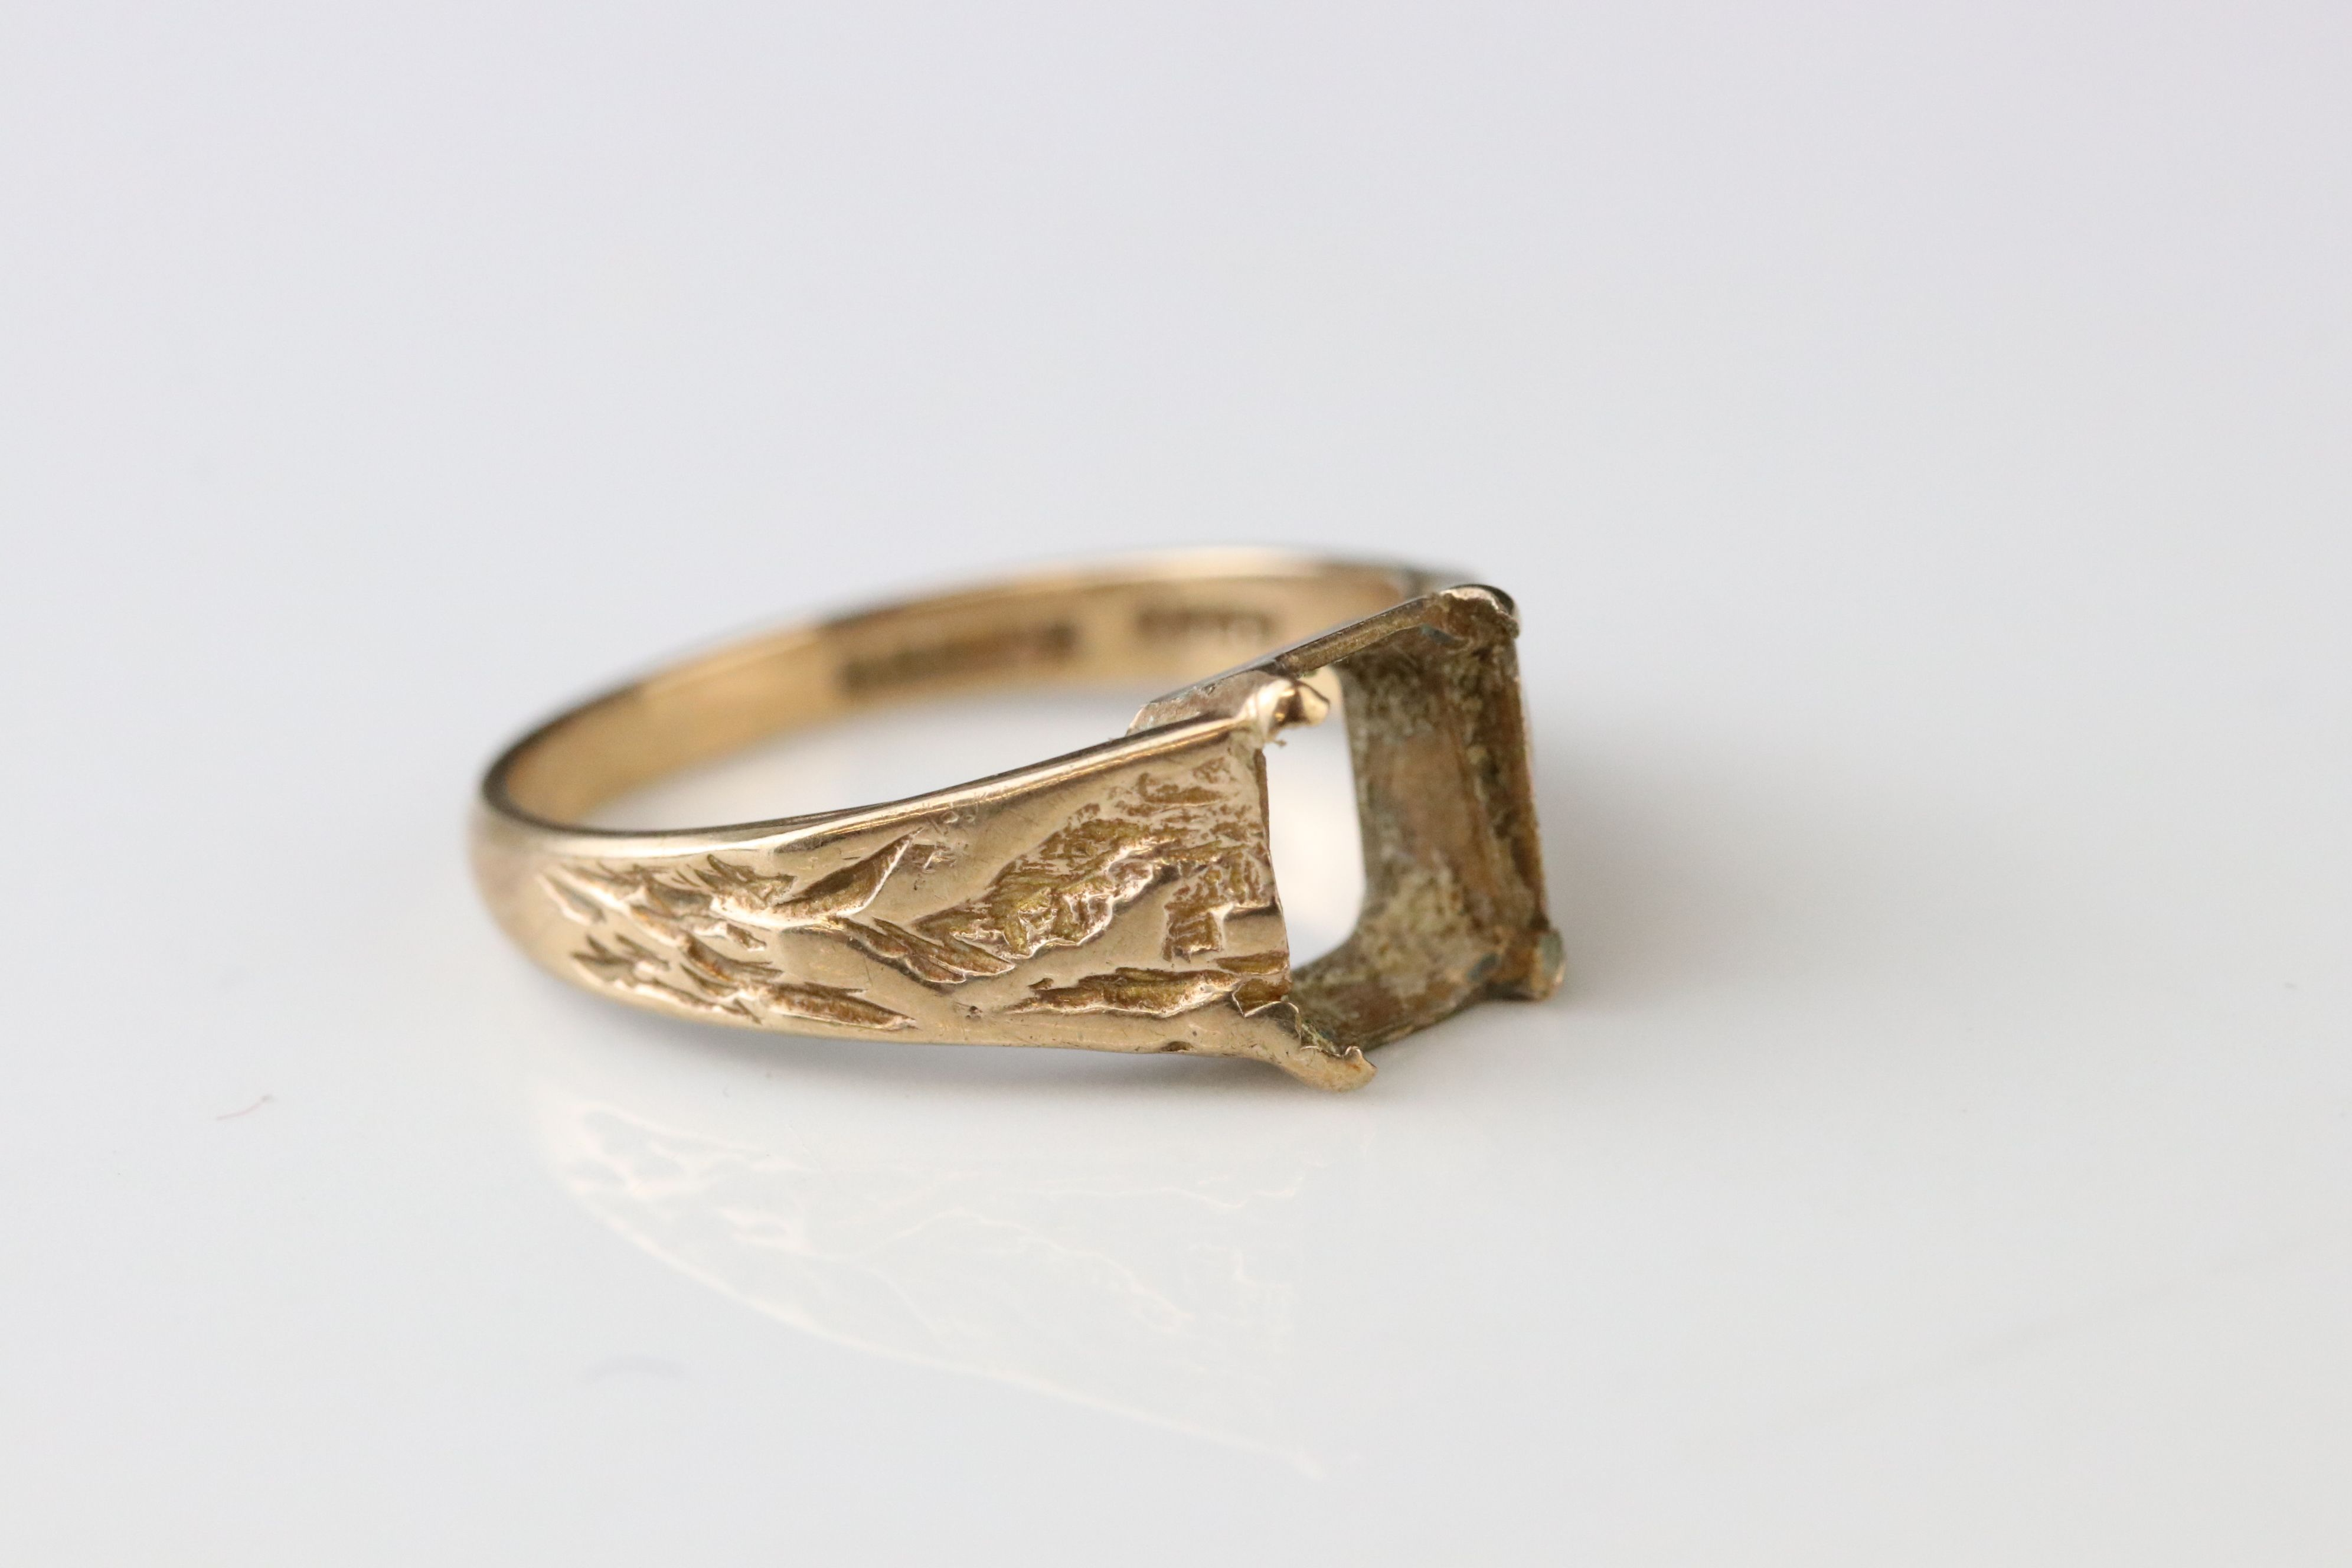 Two 9ct gold dress rings (one af) together with a 9ct gold mount (stone missing) (3) - Image 4 of 5